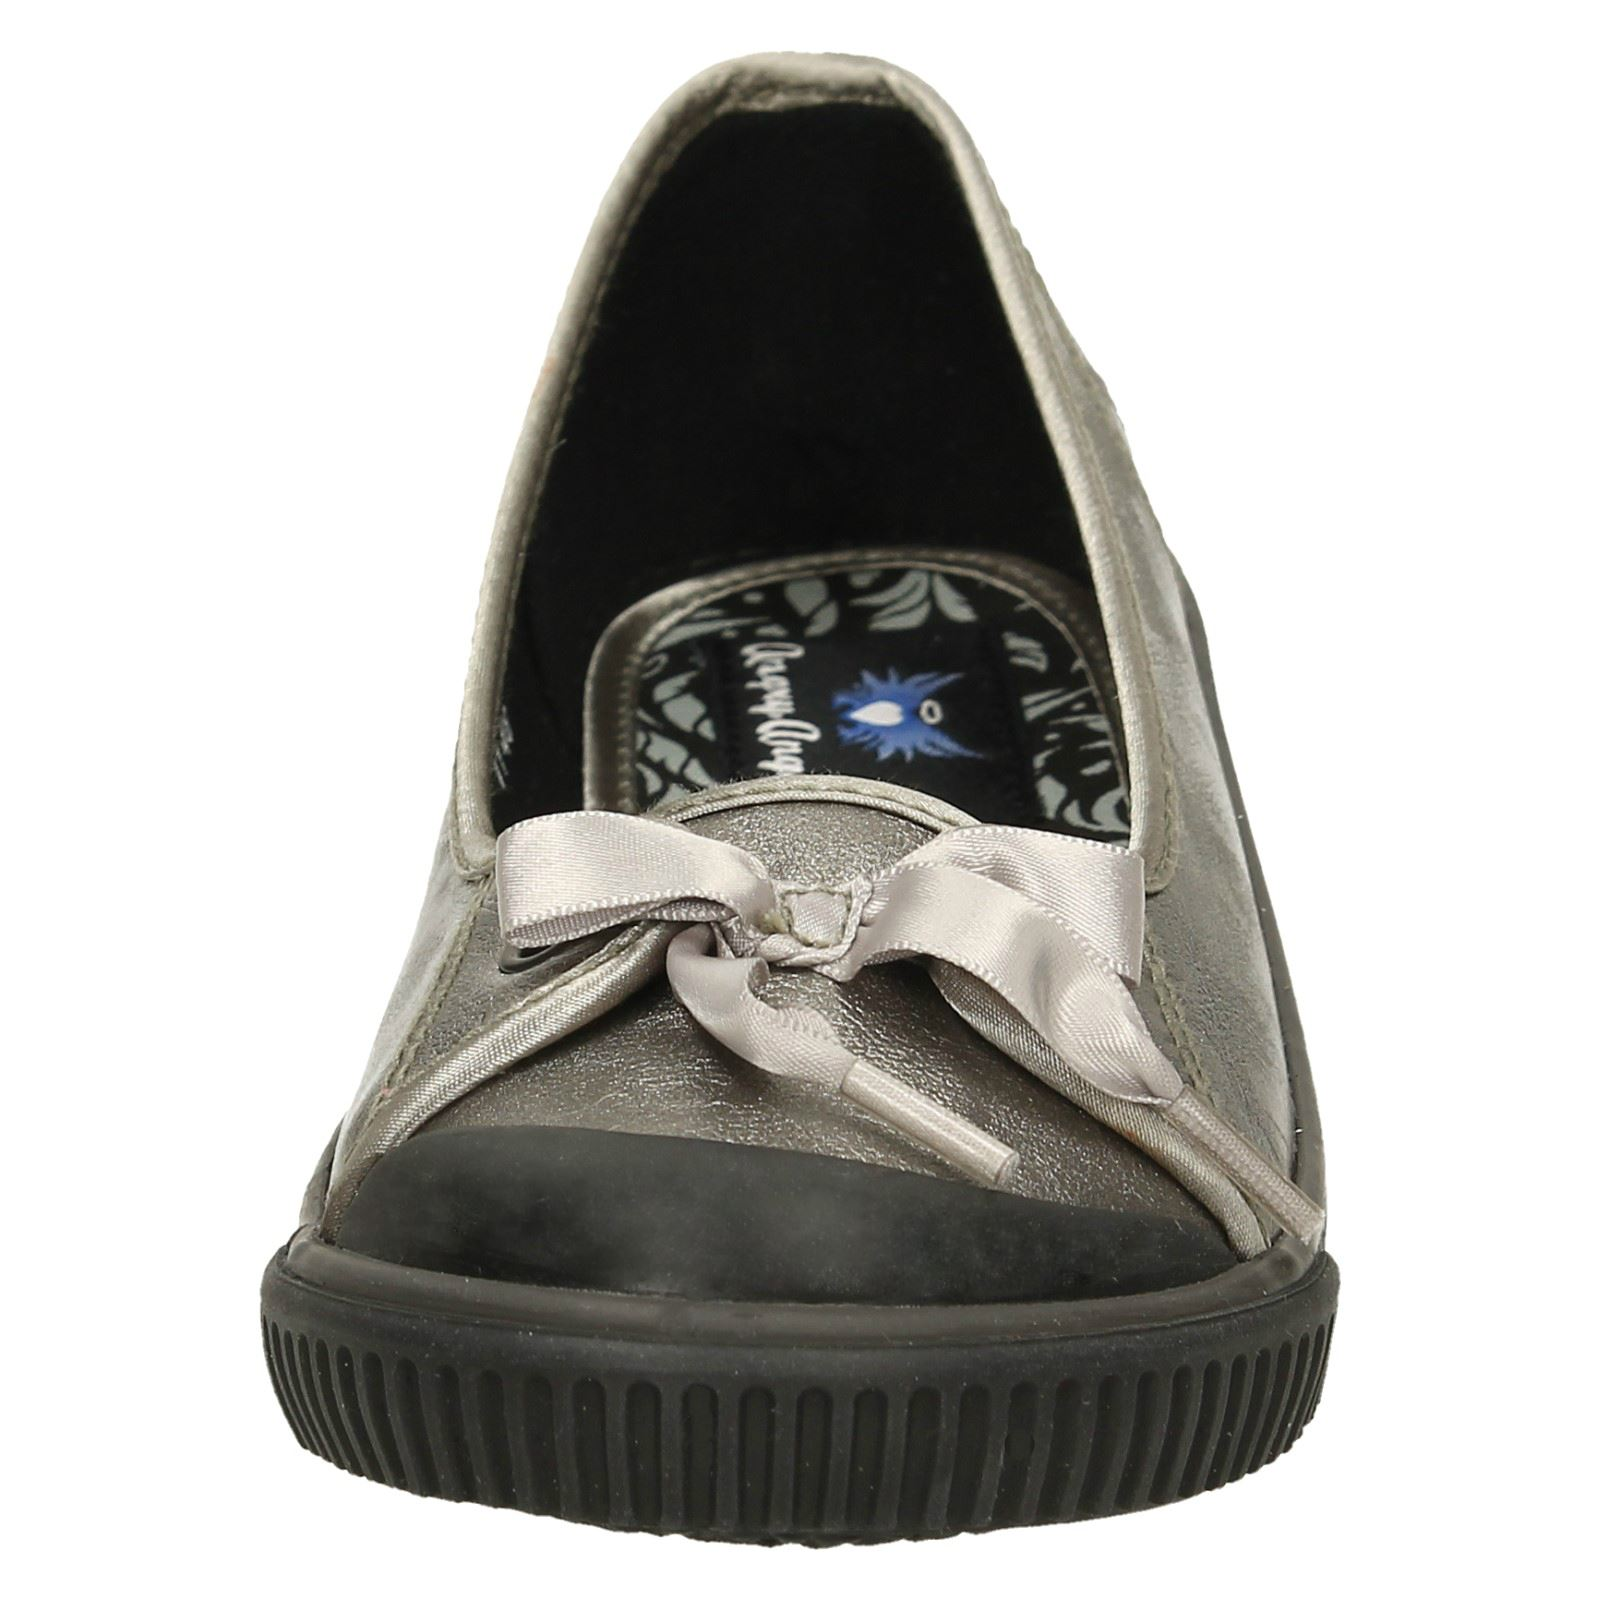 Girls-Startrite-Angry-Angel-Casual-Flat-Pumps-039-Diva-039 thumbnail 18